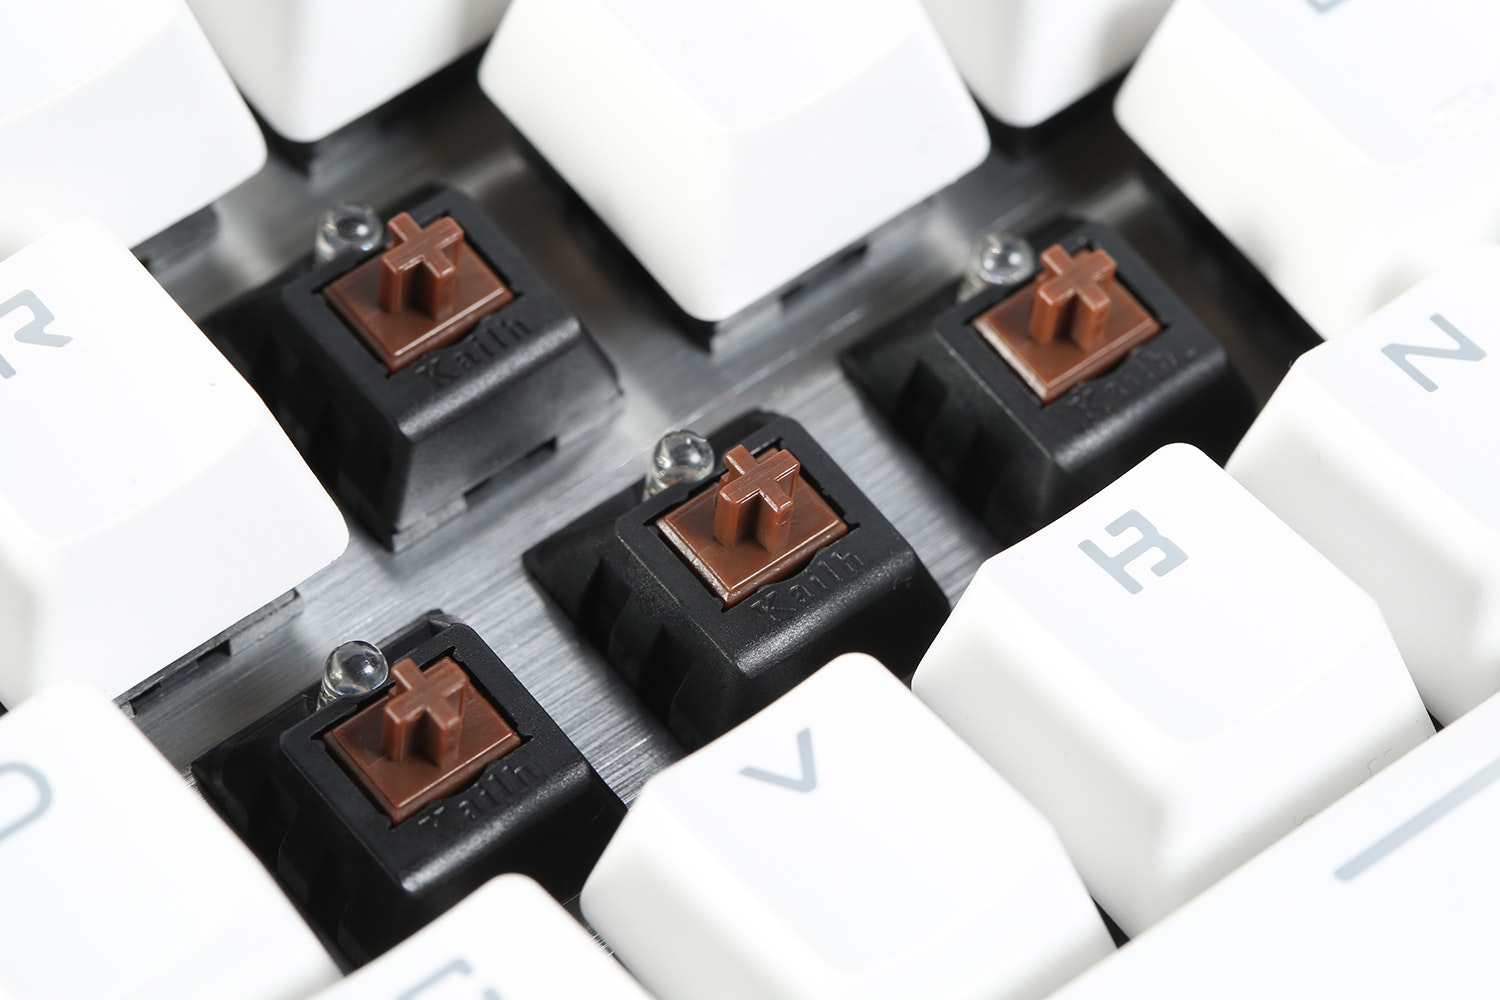 E-3LUE K727 Mechanical Keyboard